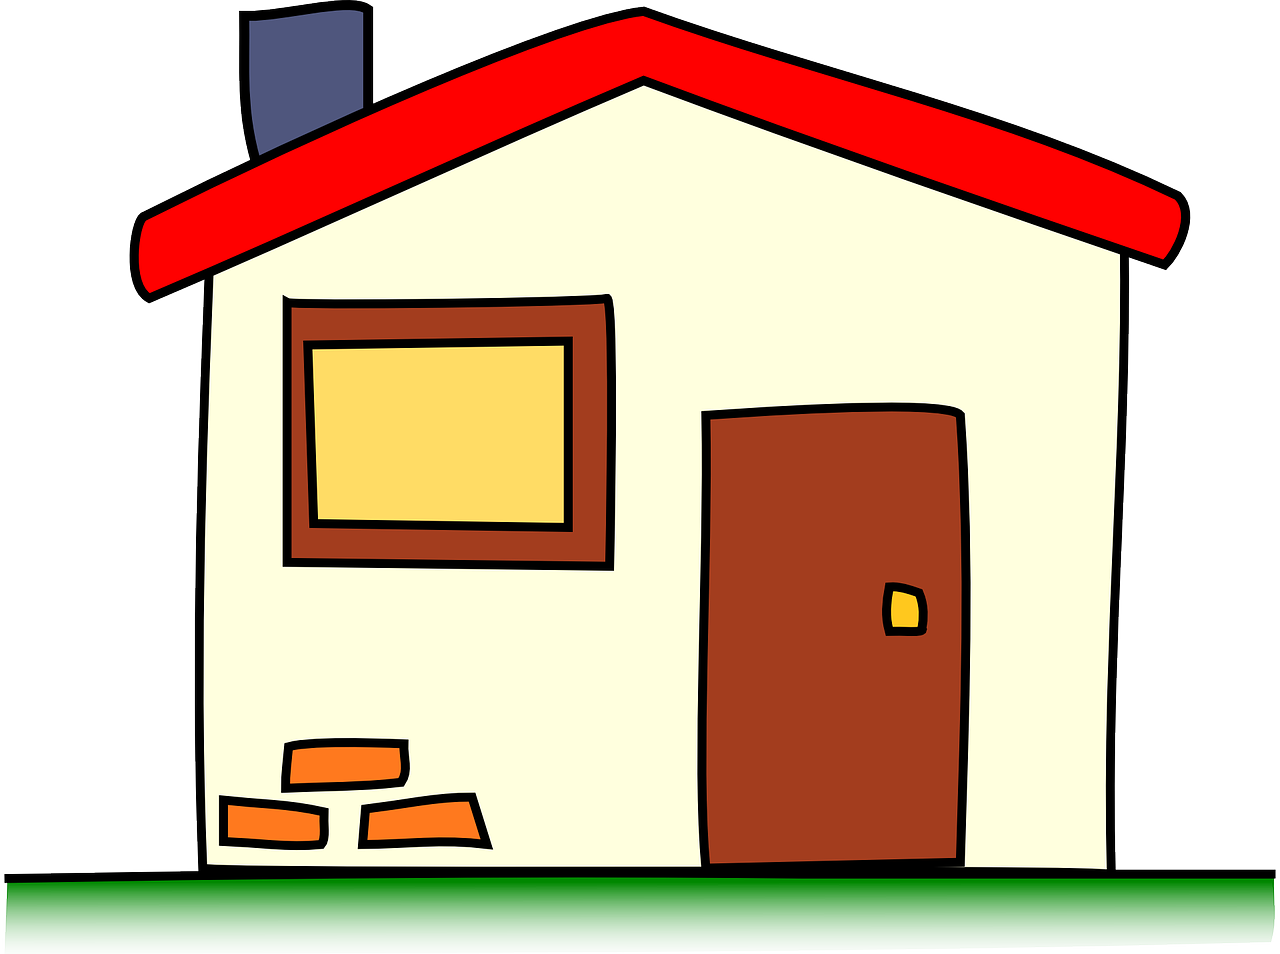 svg Mansion clipart animated. Building png presidential nomination